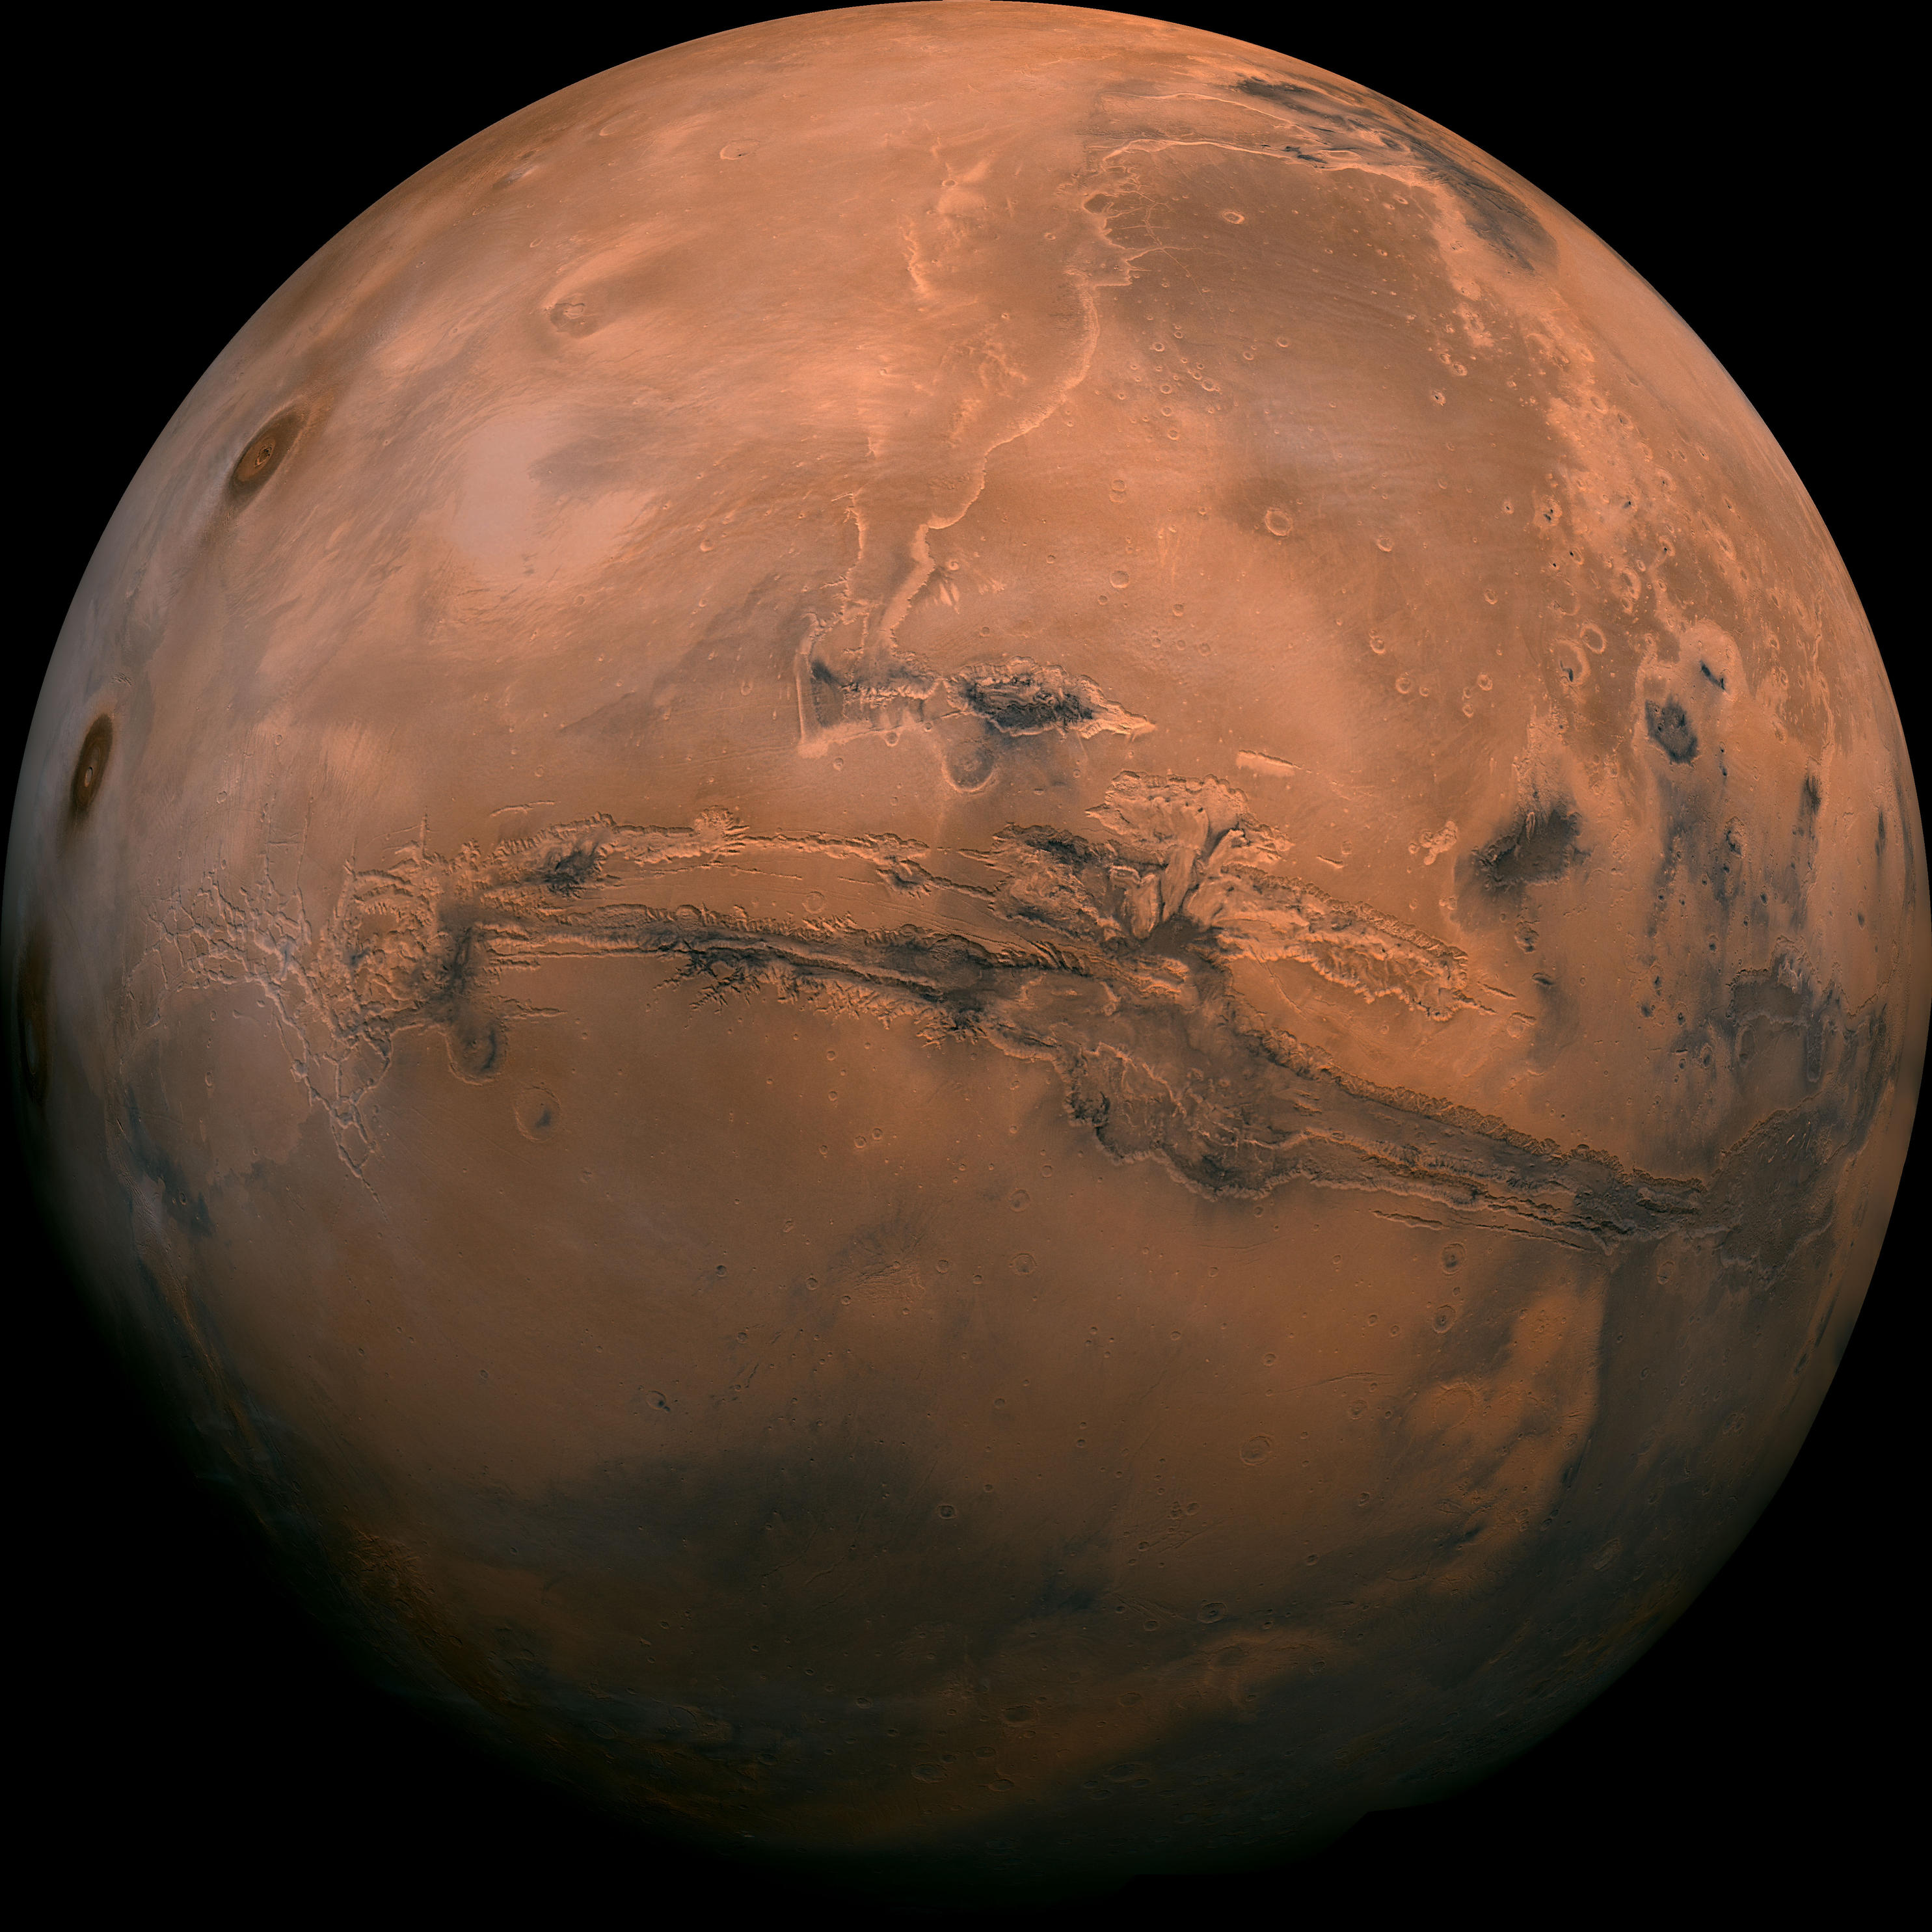 Mosaic of the Valles Marineris hemisphere of Mars projected into point perspective, a view similar to that which one would see from a spacecraft.